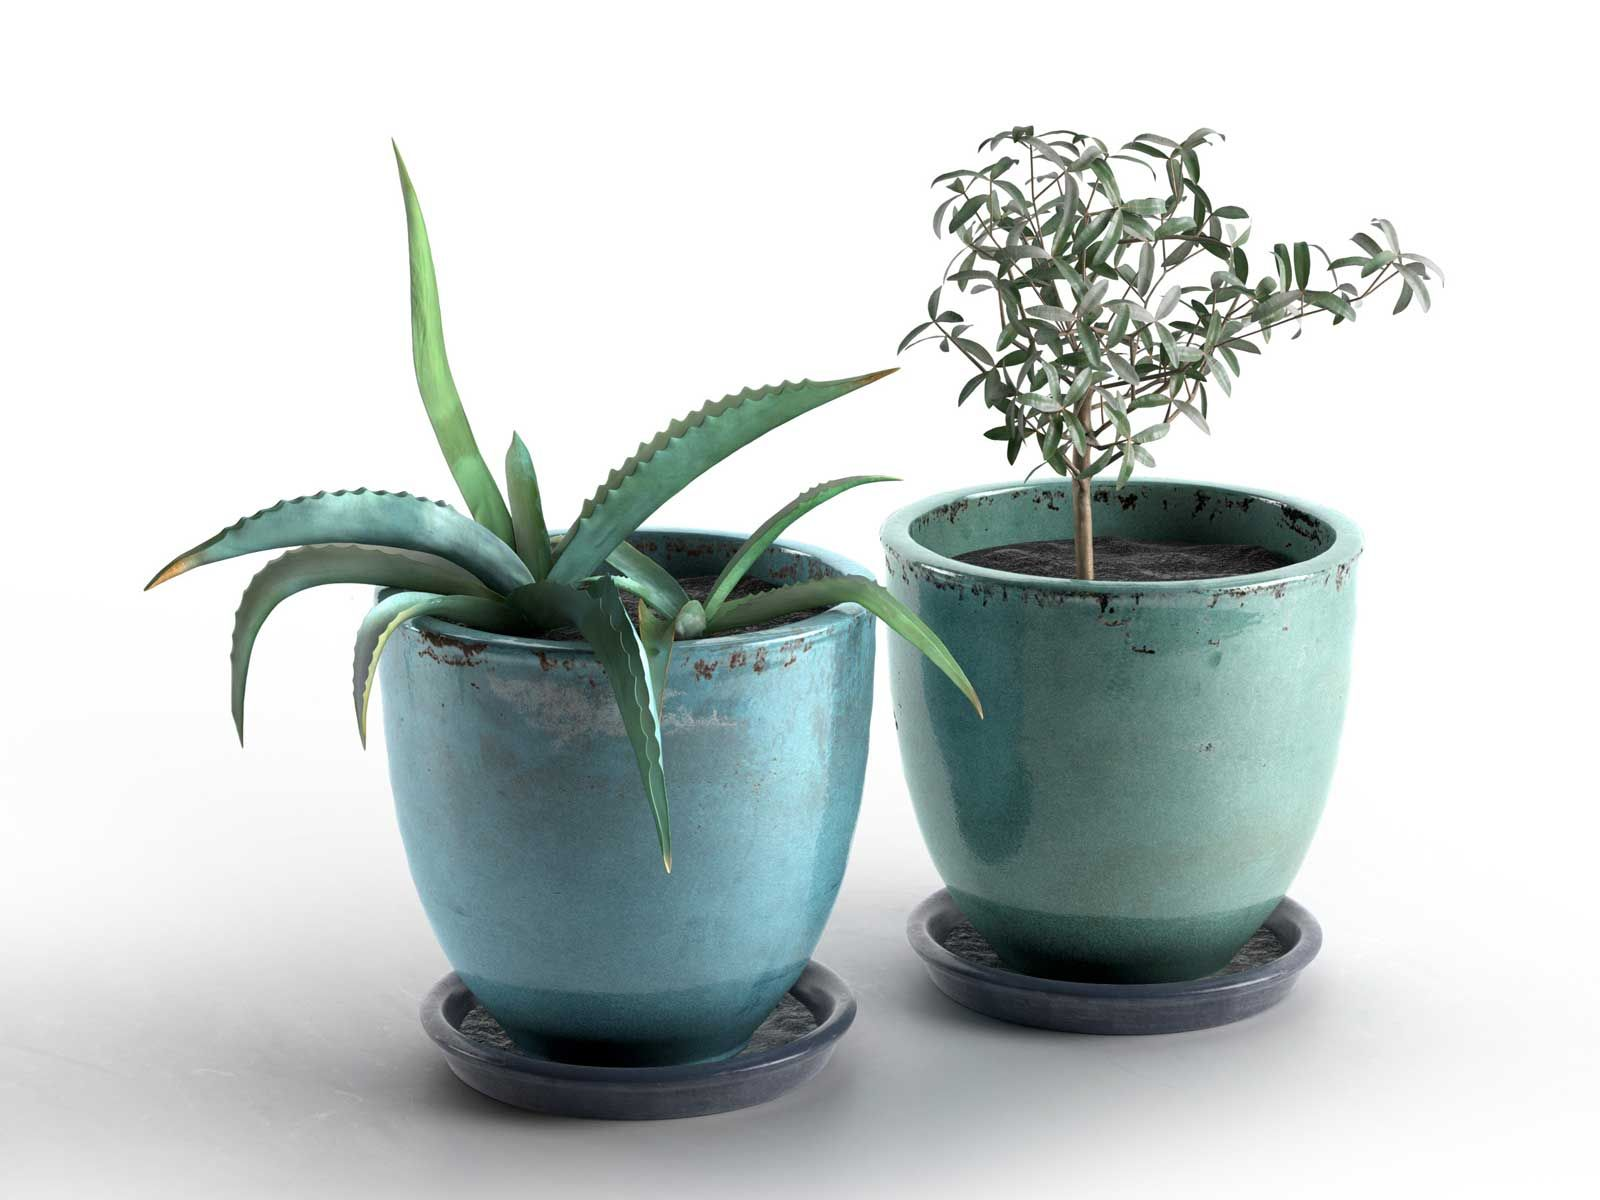 aloe and olive plants in pots. Black Bedroom Furniture Sets. Home Design Ideas